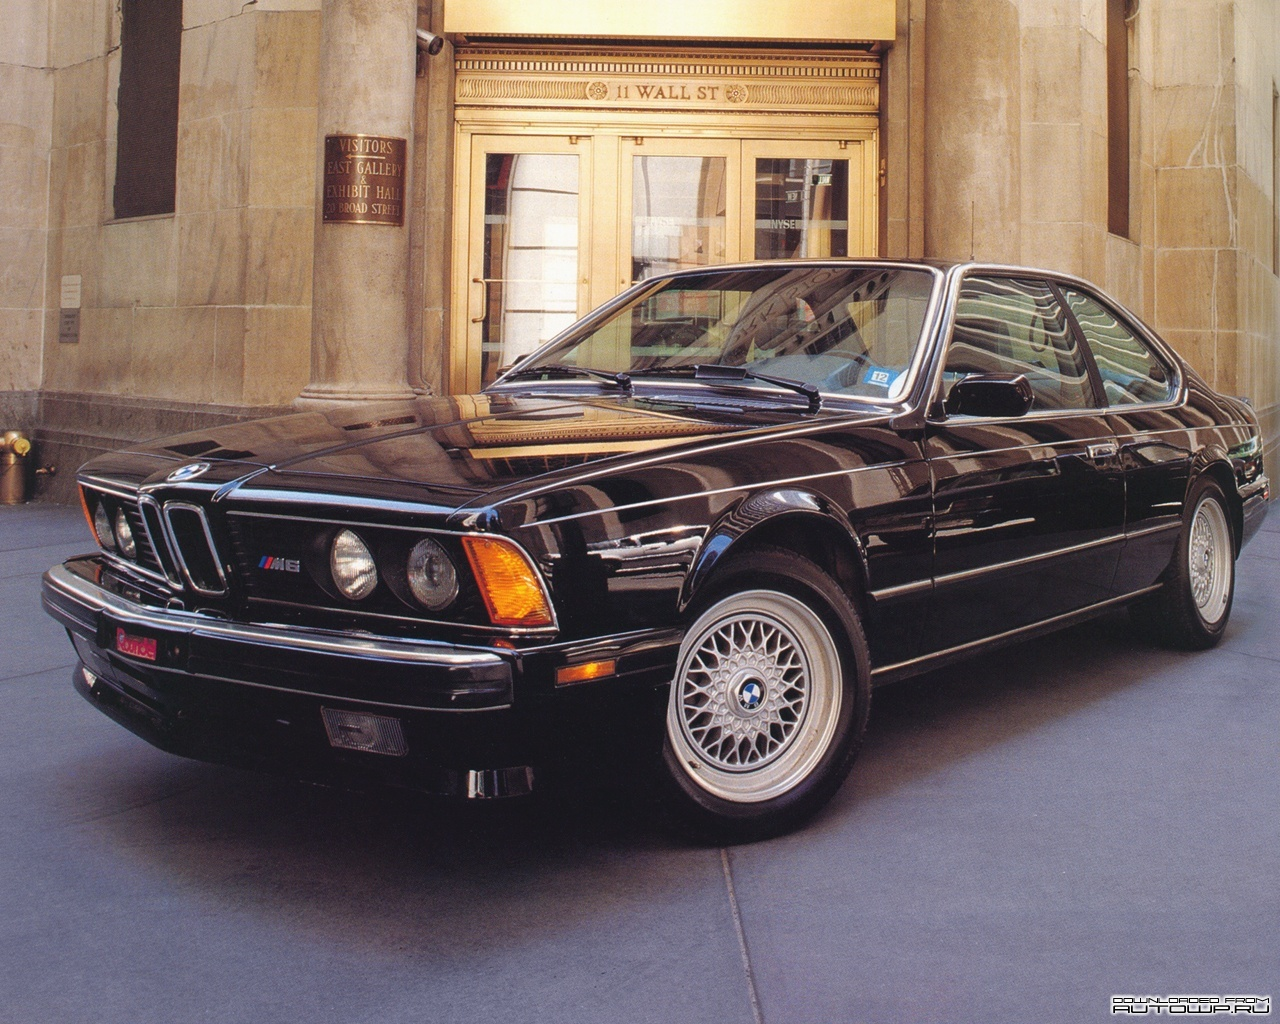 BMW M6 E24 picture #63805 | BMW photo gallery | CarsBase.com